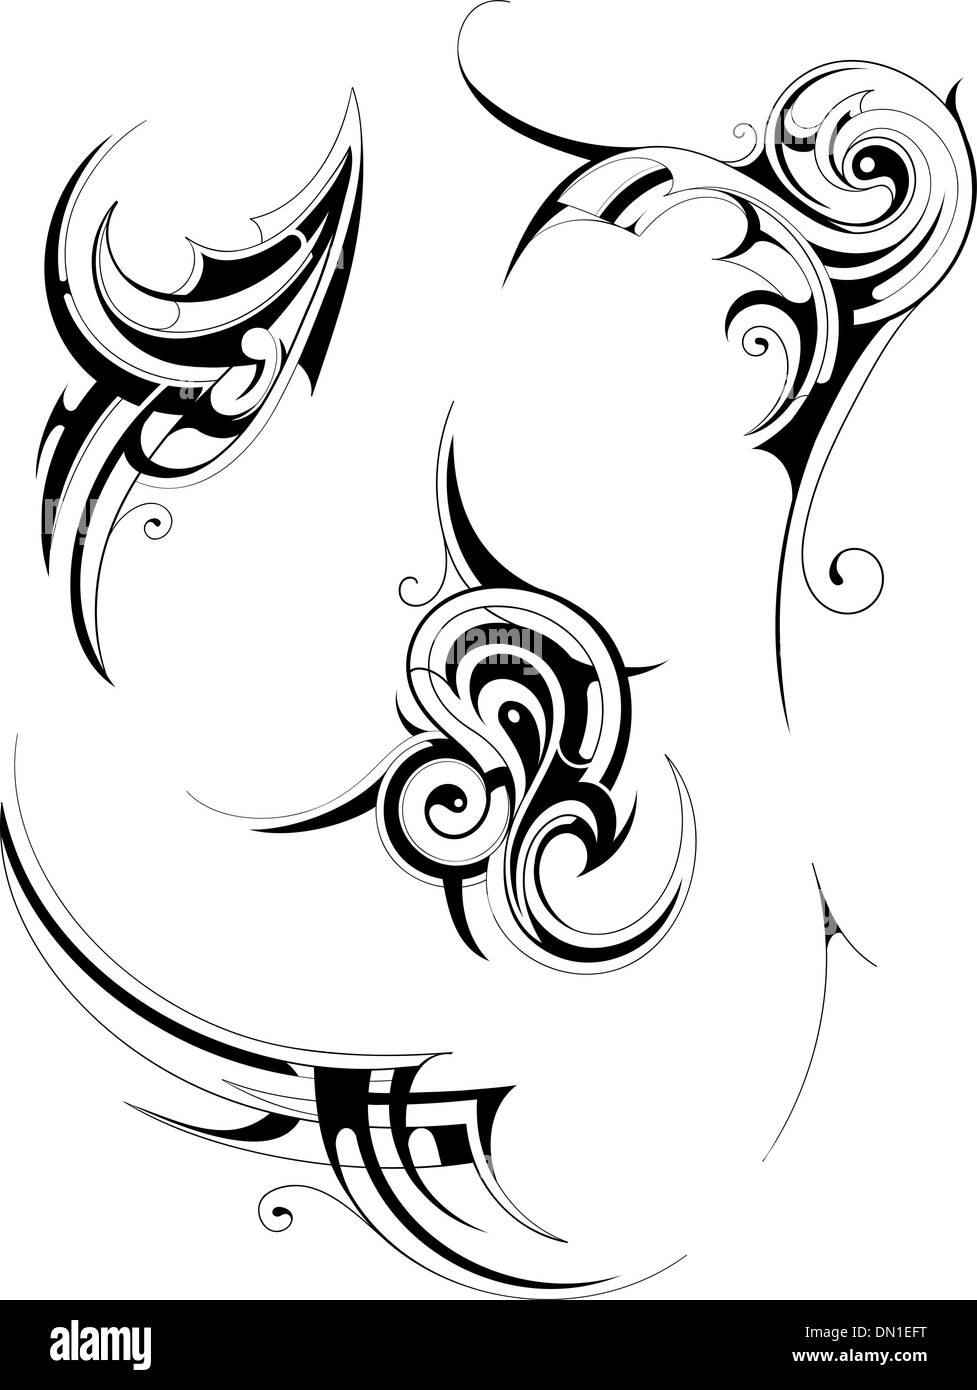 Tribal art - Stock Image